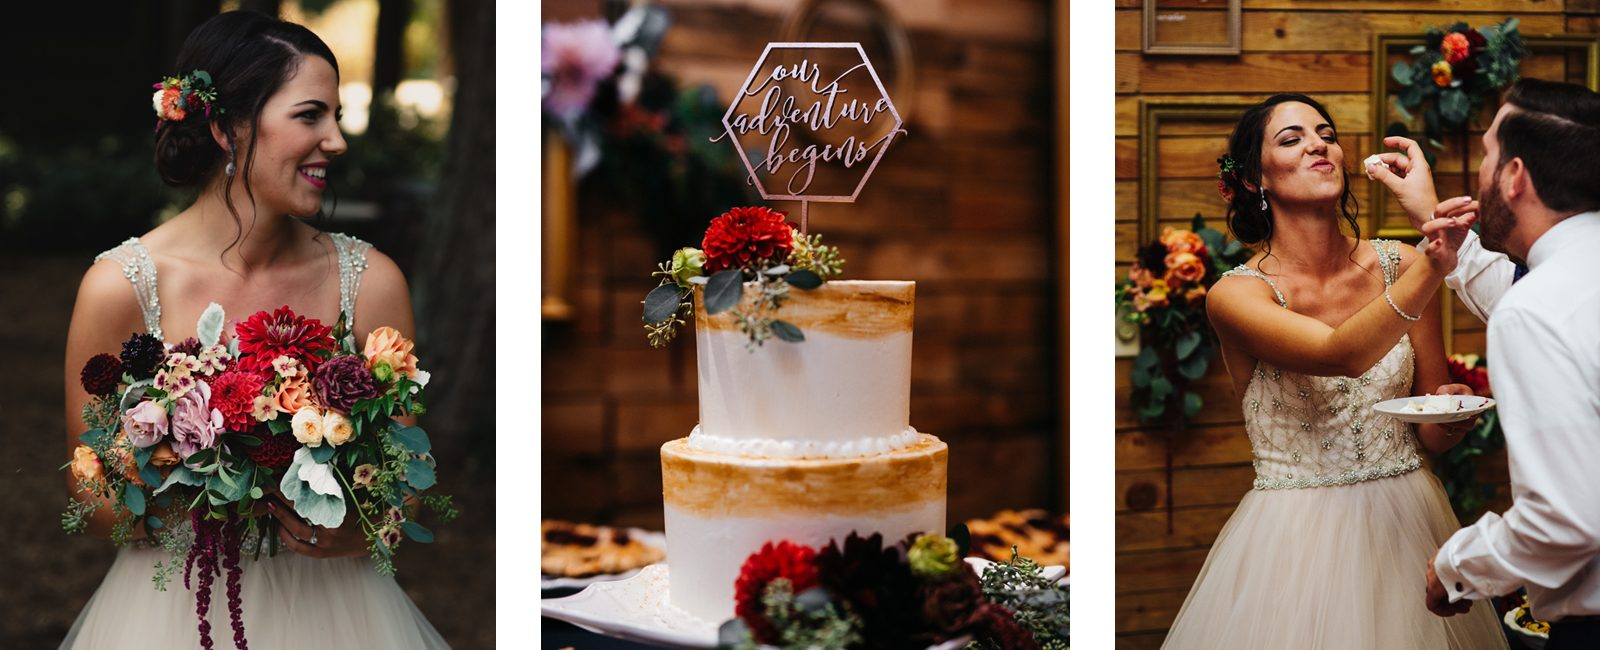 Wedding Cake by Fireseed Catering